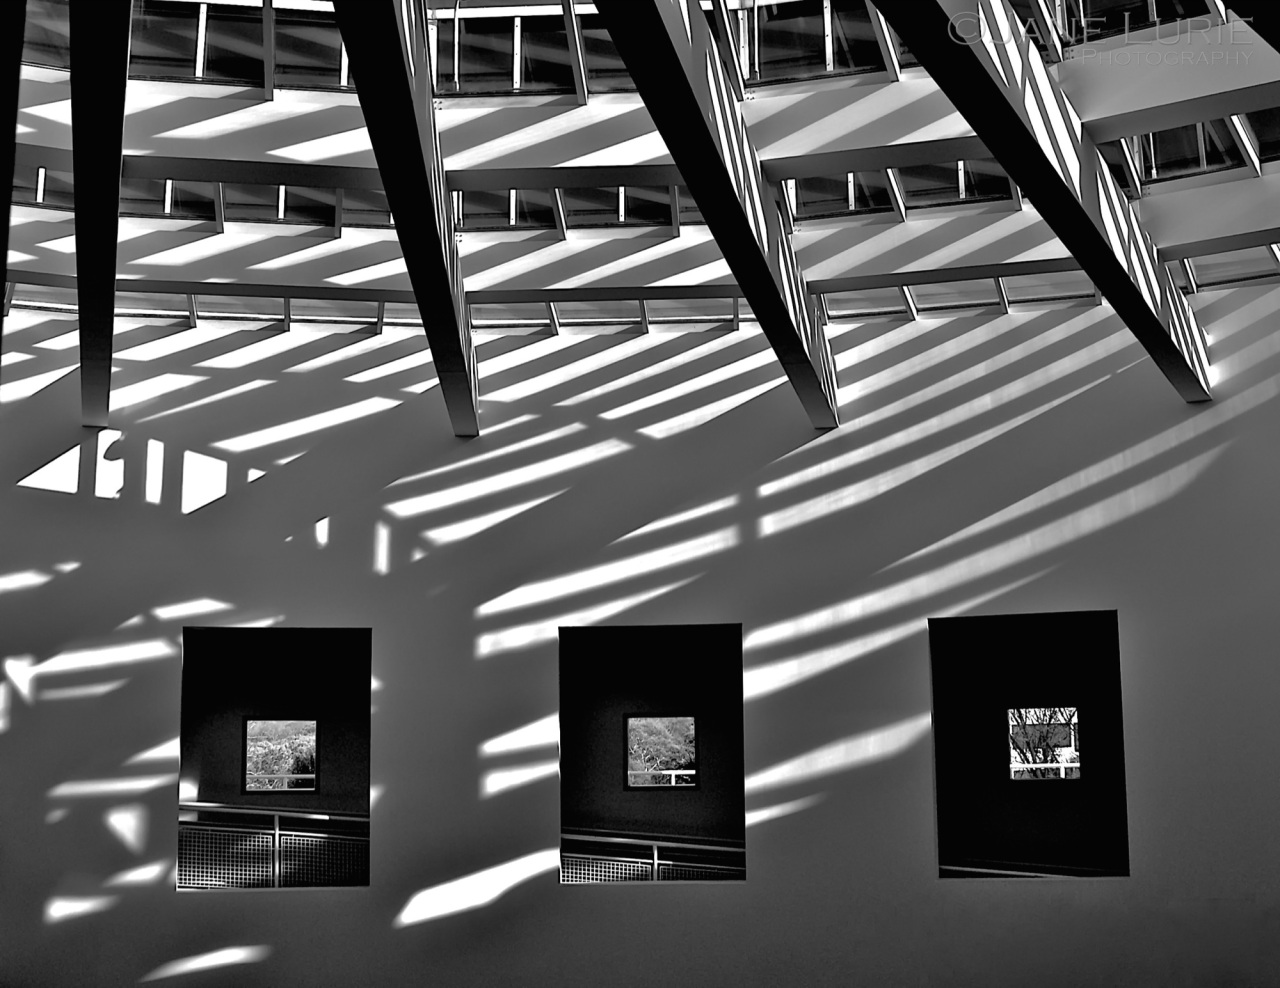 Photography, Architecture, Black and White, Monochrome